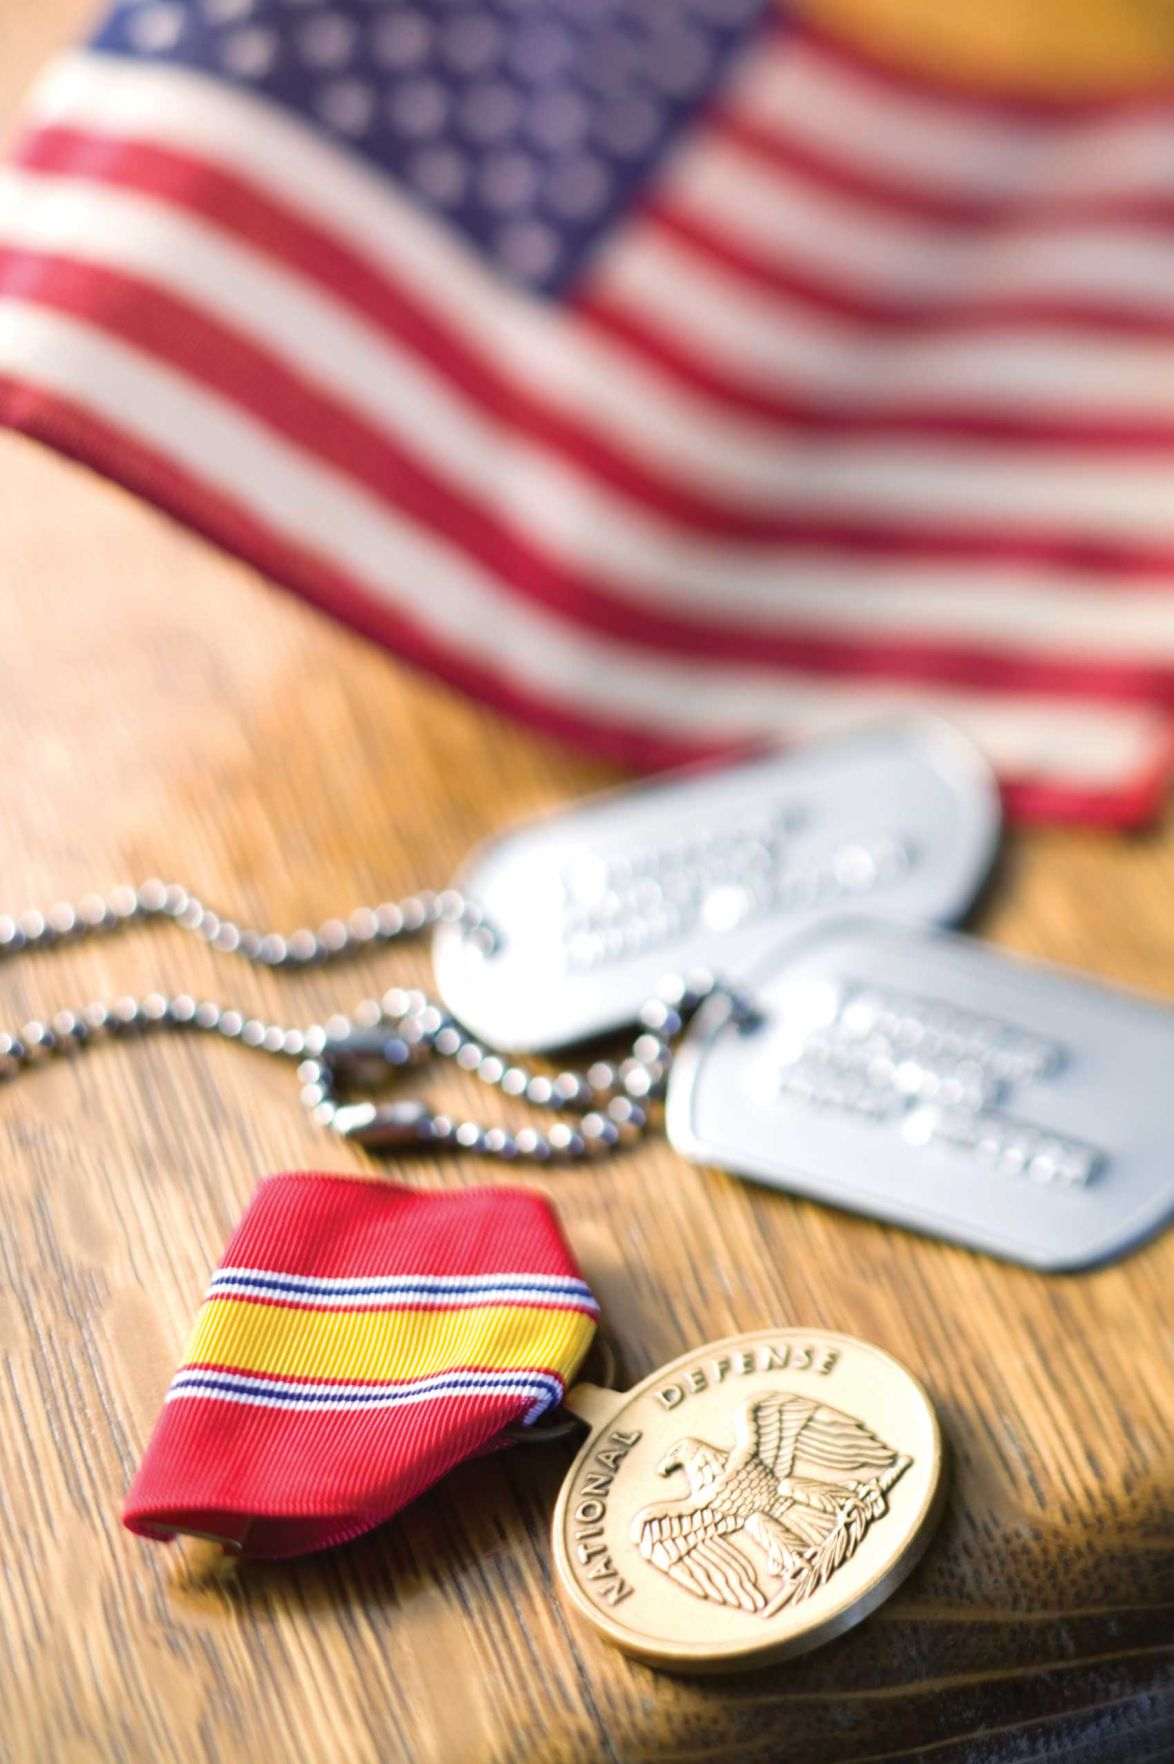 6 Forest County veterans have died since last year